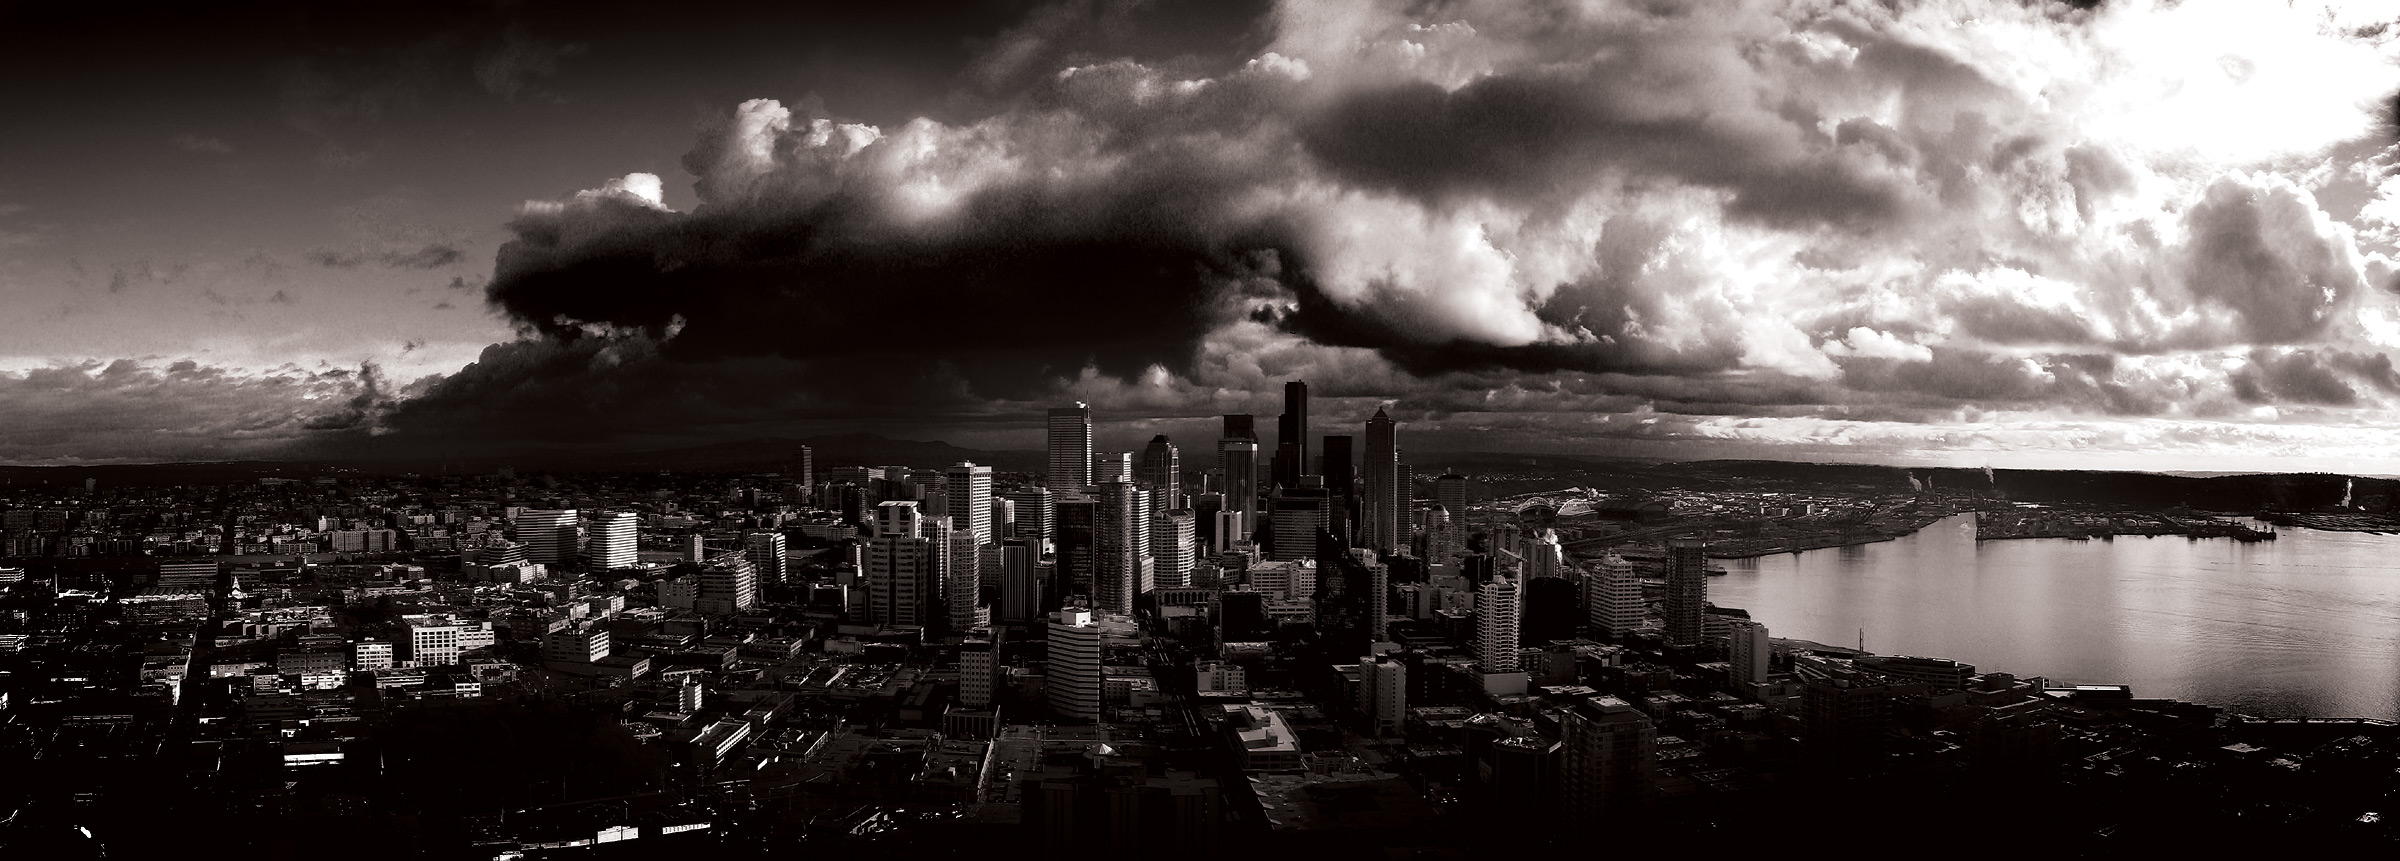 stormy seattle grayscale dual monitor hd quality HD Wallpaper 2400x861